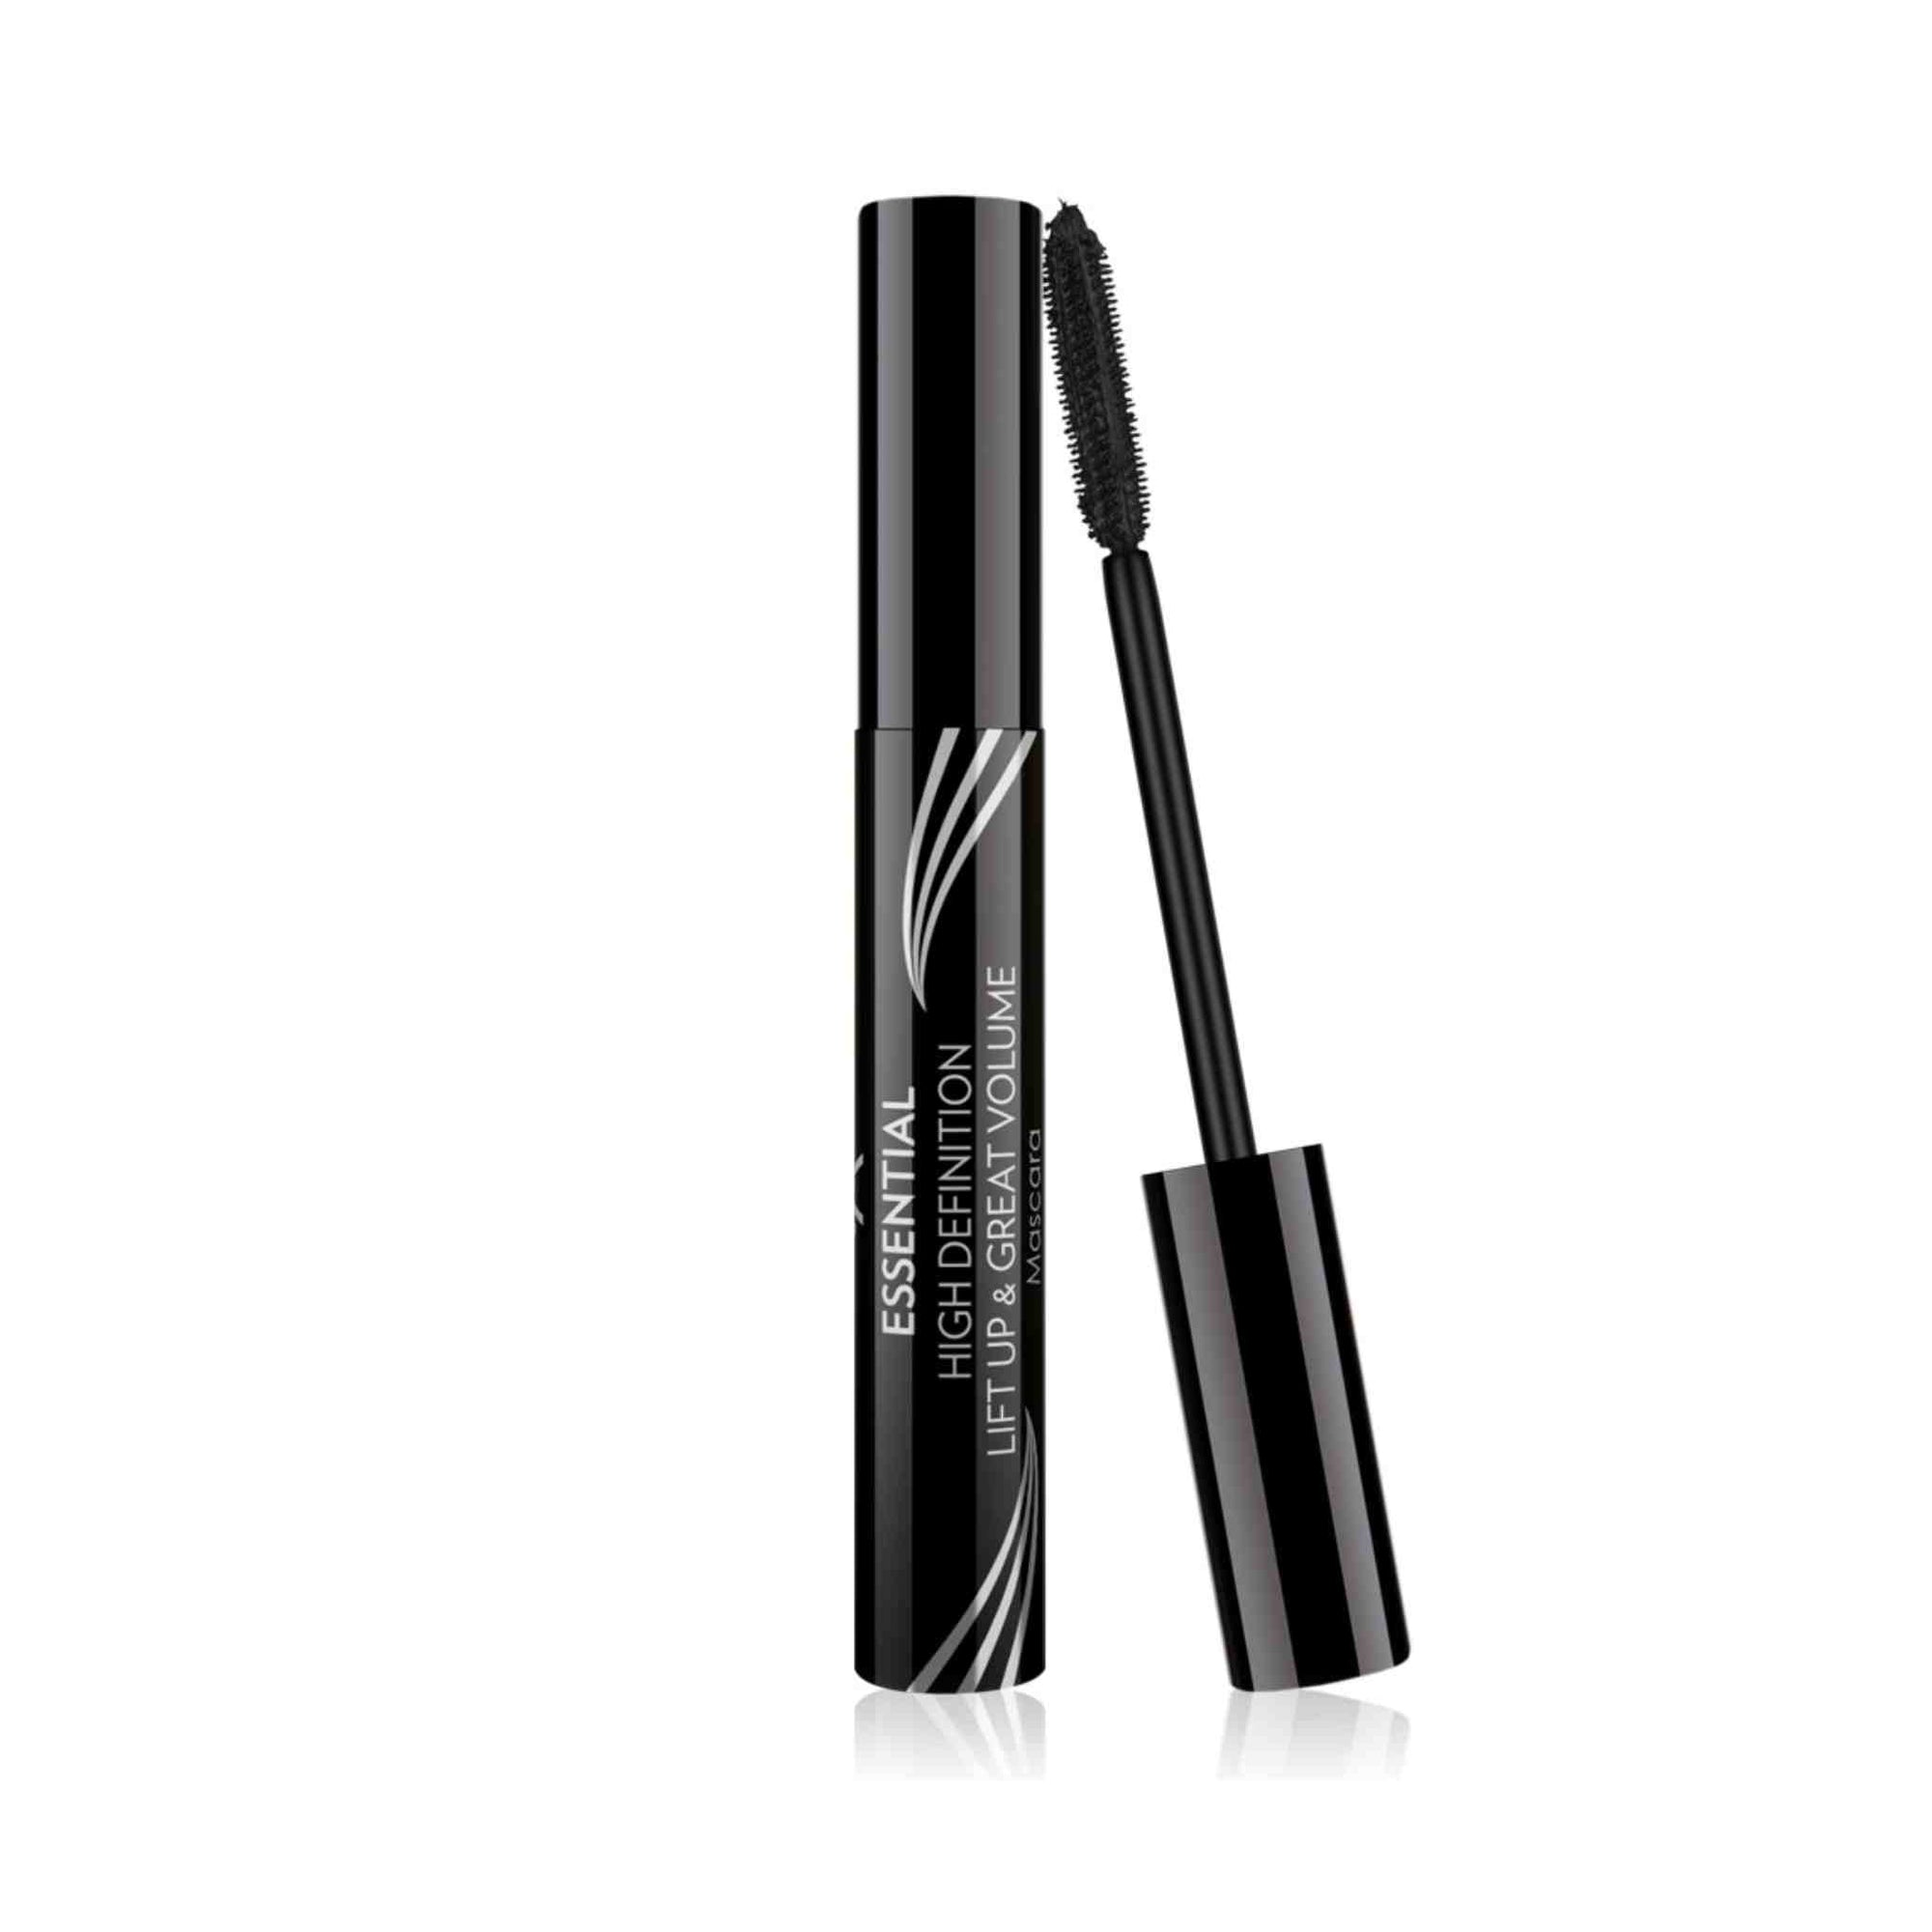 Essential High Definition Lift Up & Great Volume Mascara